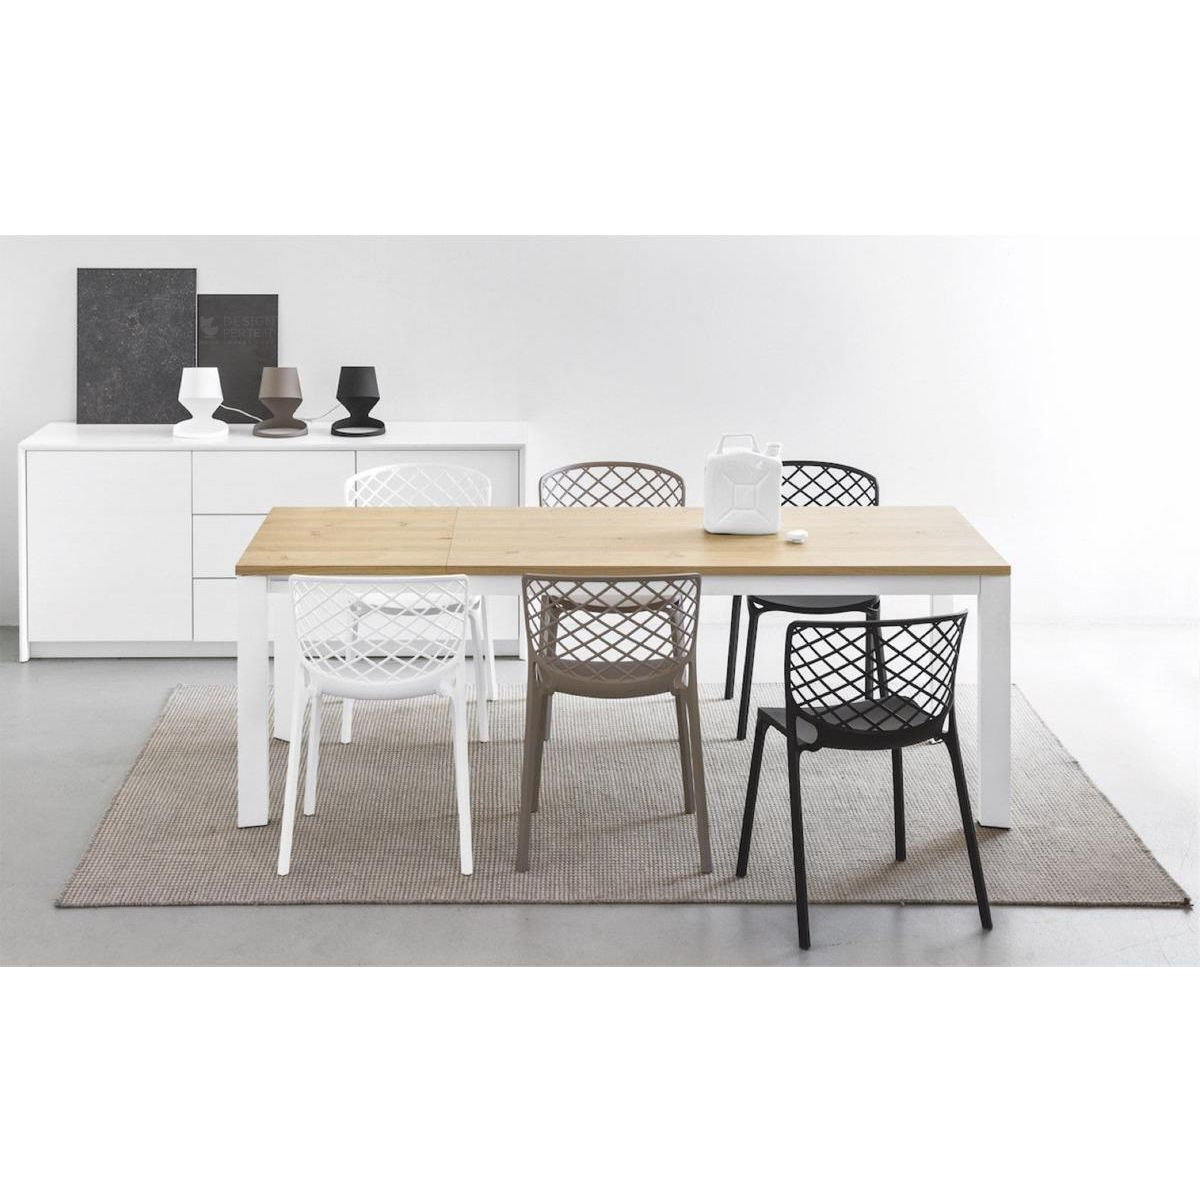 Tavolo Park Calligaris Prezzo Jungle By Calligaris Archelloof Tavolo Jungle Calligaris